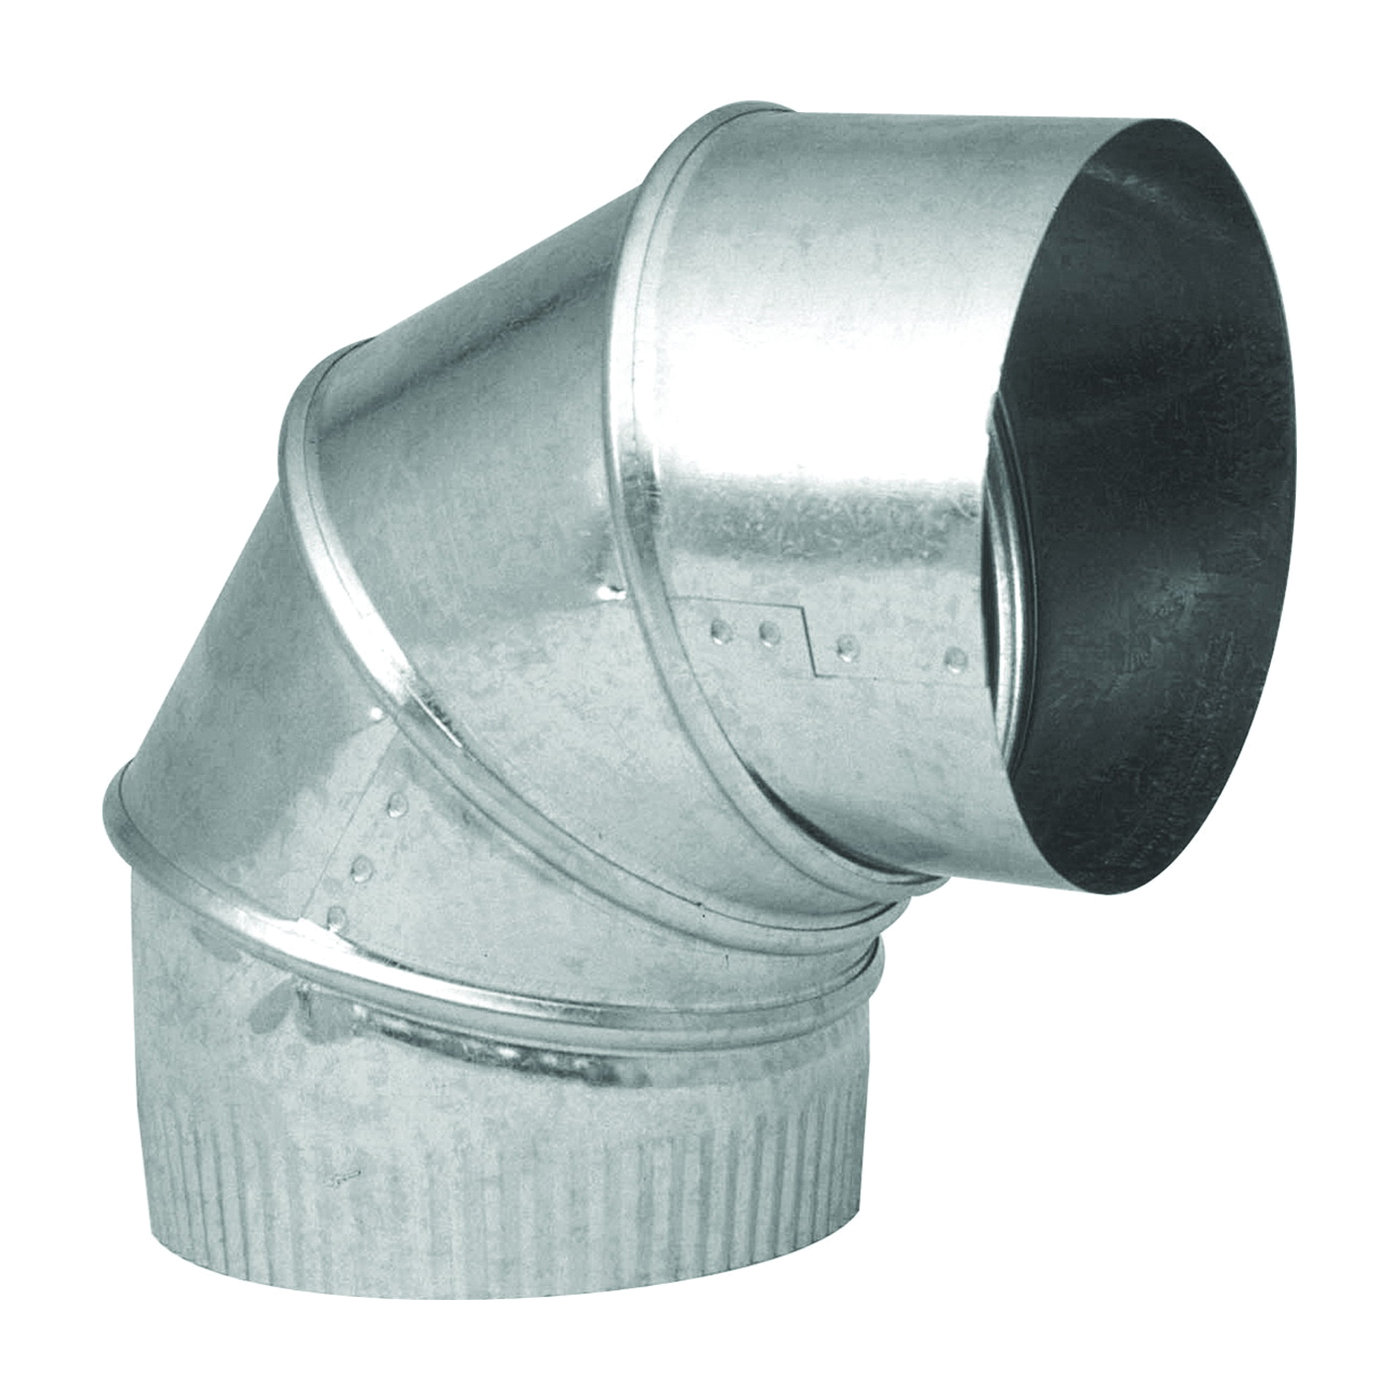 Picture of Imperial GV0293-C Stove Pipe Elbow, 6 in Connection, 24 Gauge, Steel